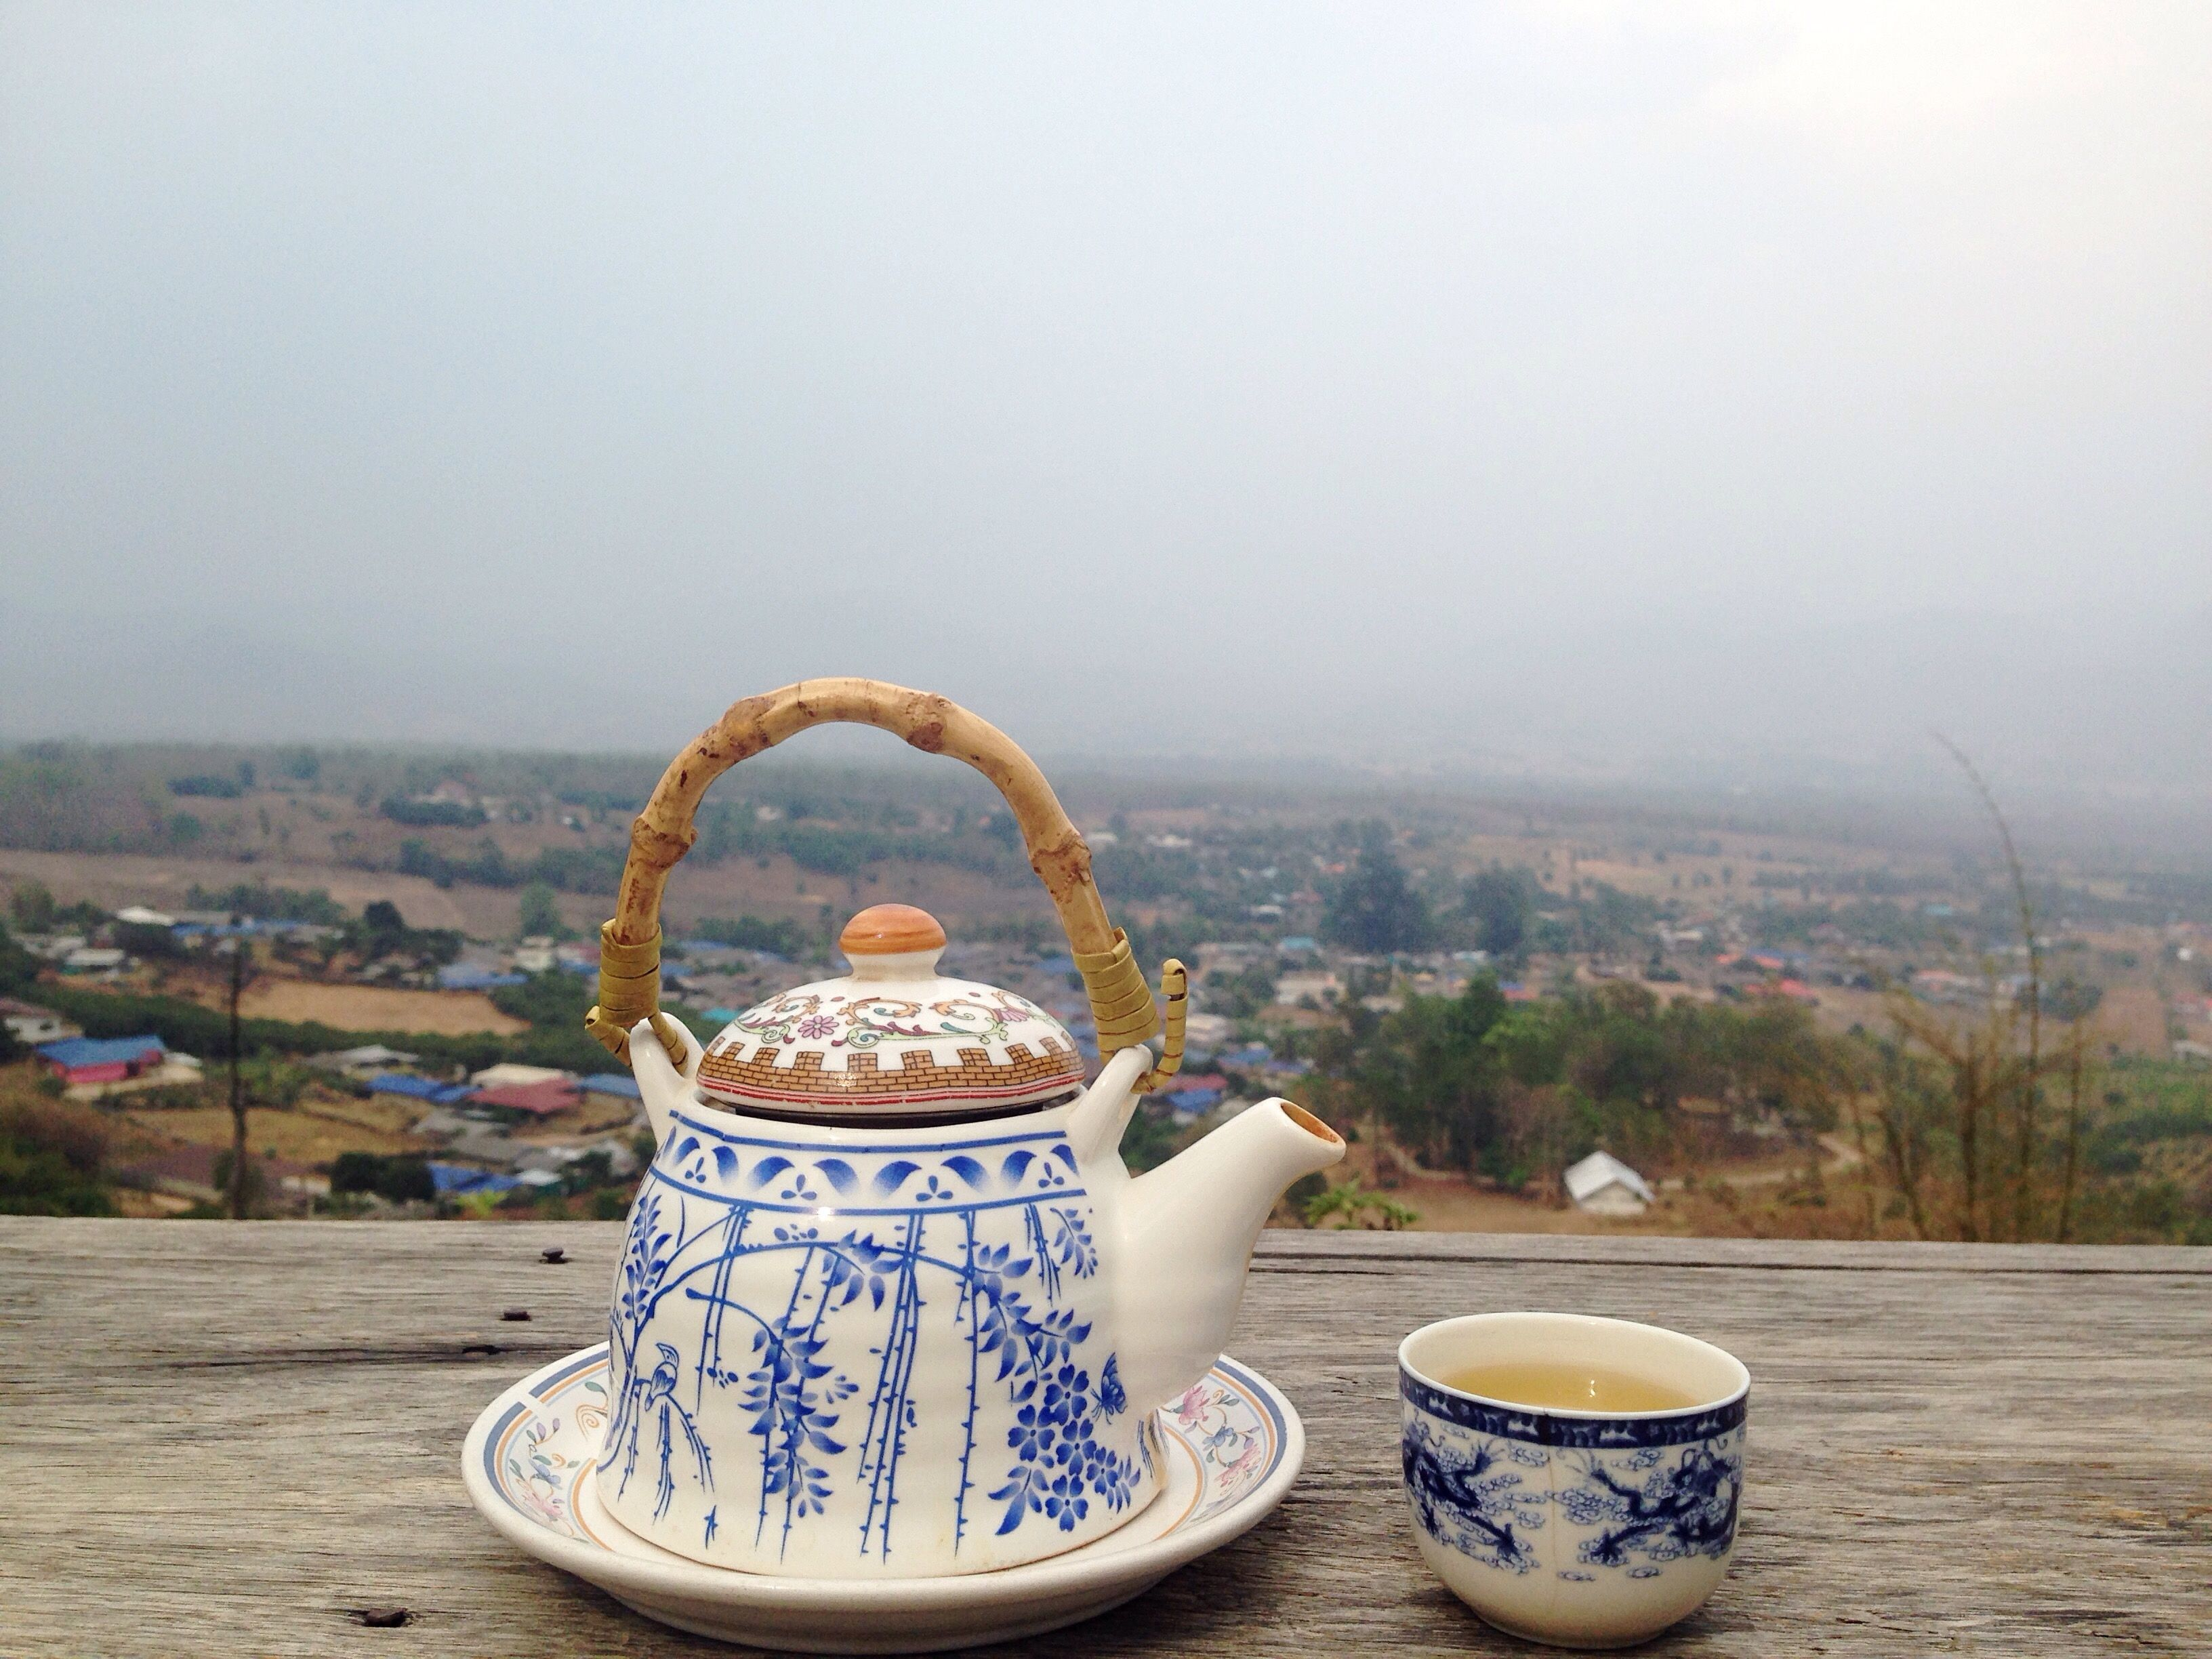 A teapot and cup at the overlook in Pai, Thailand